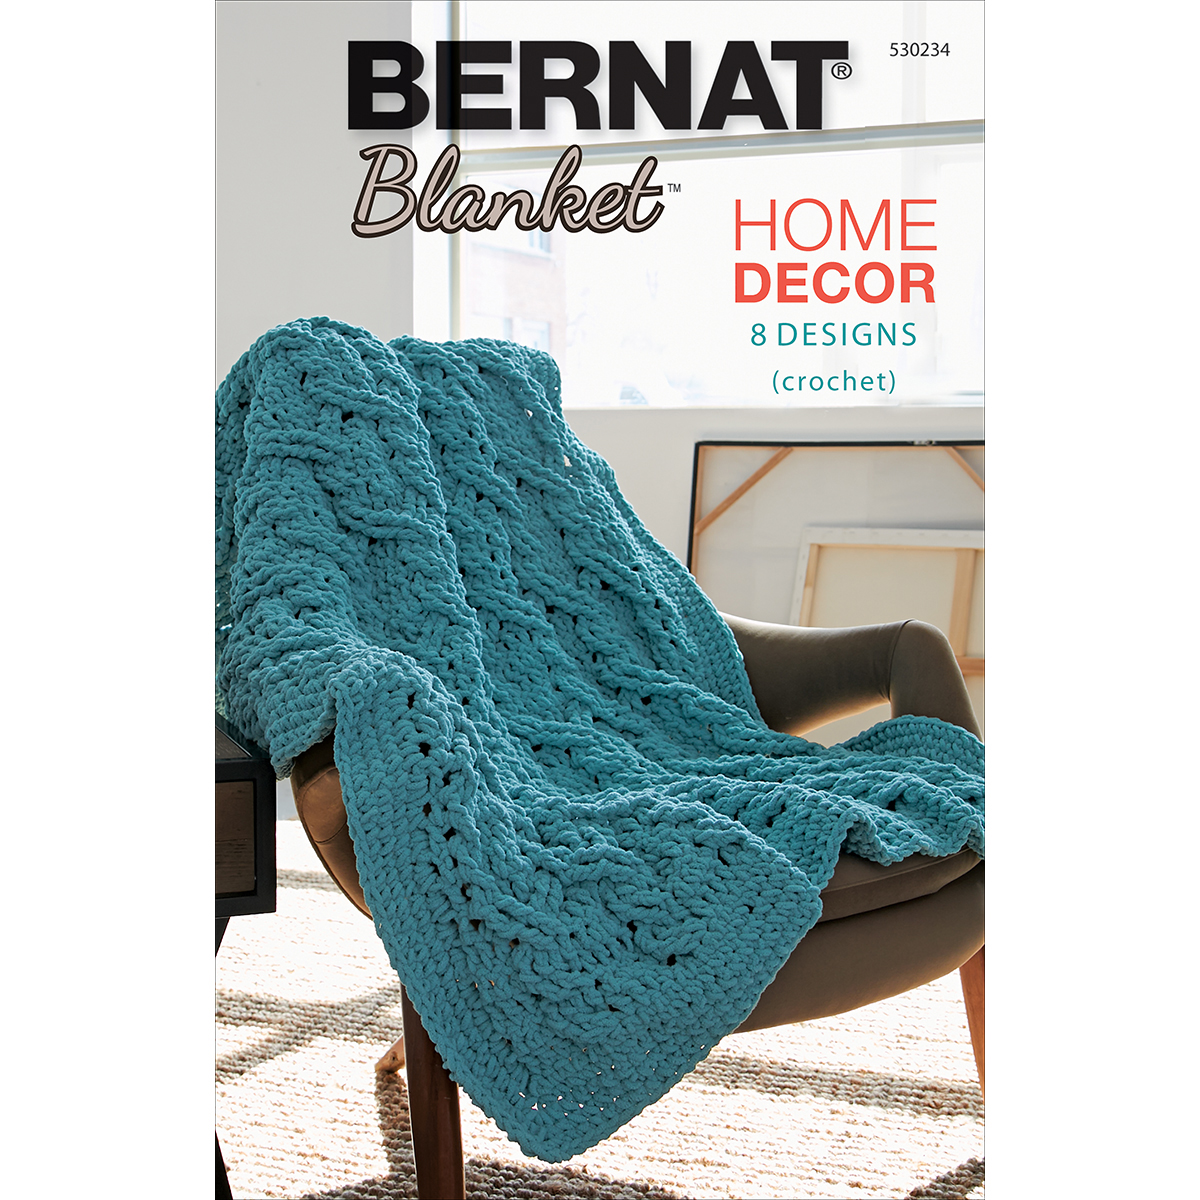 ... Crochet Patterns ? Crochet Books Home DEcor ? Bernat Blanket Home